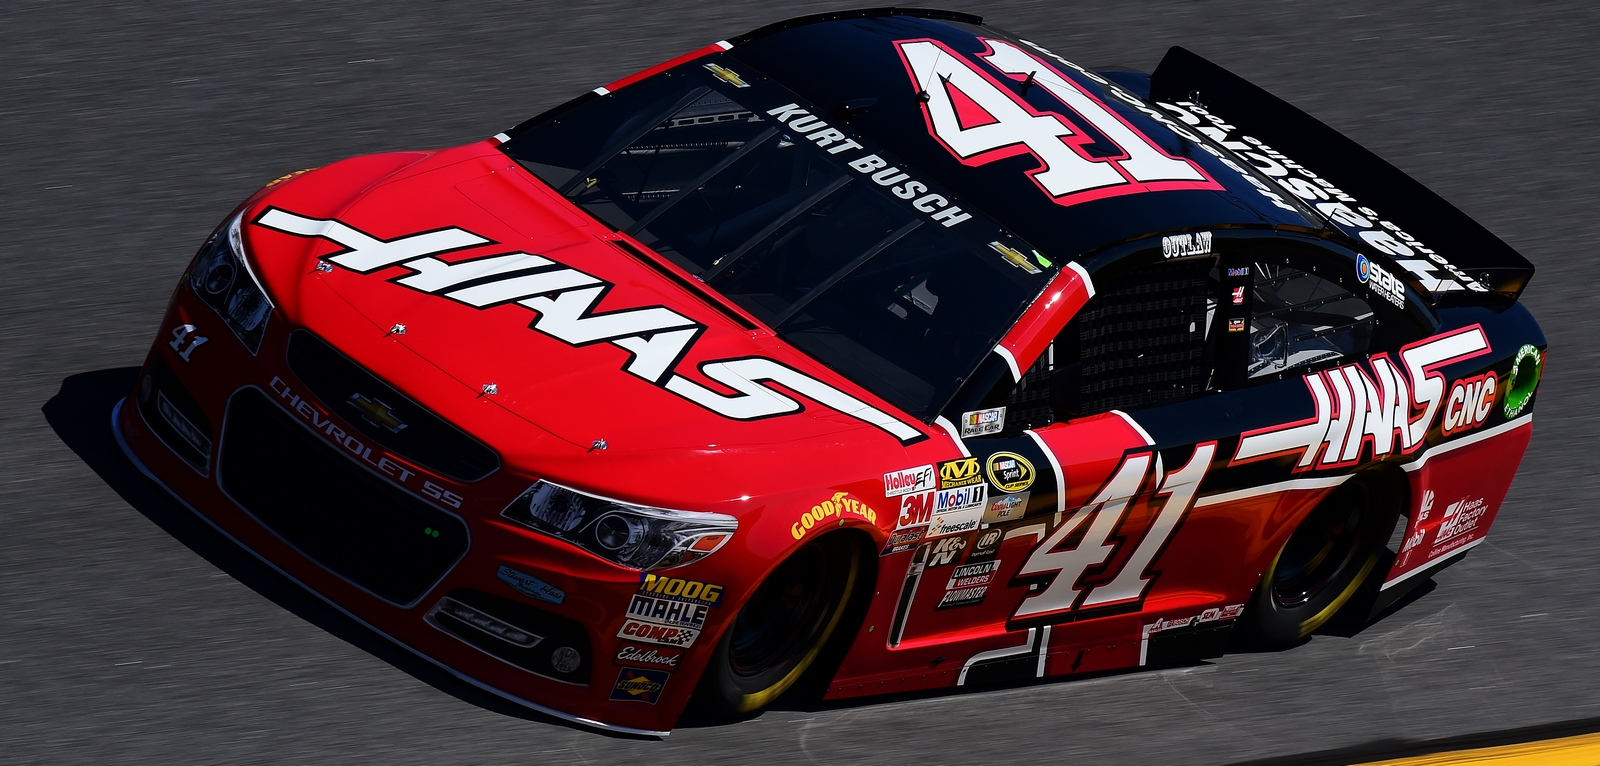 DAYTONA BEACH, FL - FEBRUARY 14:  Kurt Busch, driver of the #41 Haas Automation Chevrolet, practices for the 57th Annual Daytona 500 at Daytona International Speedway on February 14, 2015 in Daytona Beach, Florida.  (Photo by Robert Laberge/NASCAR via Getty Images)